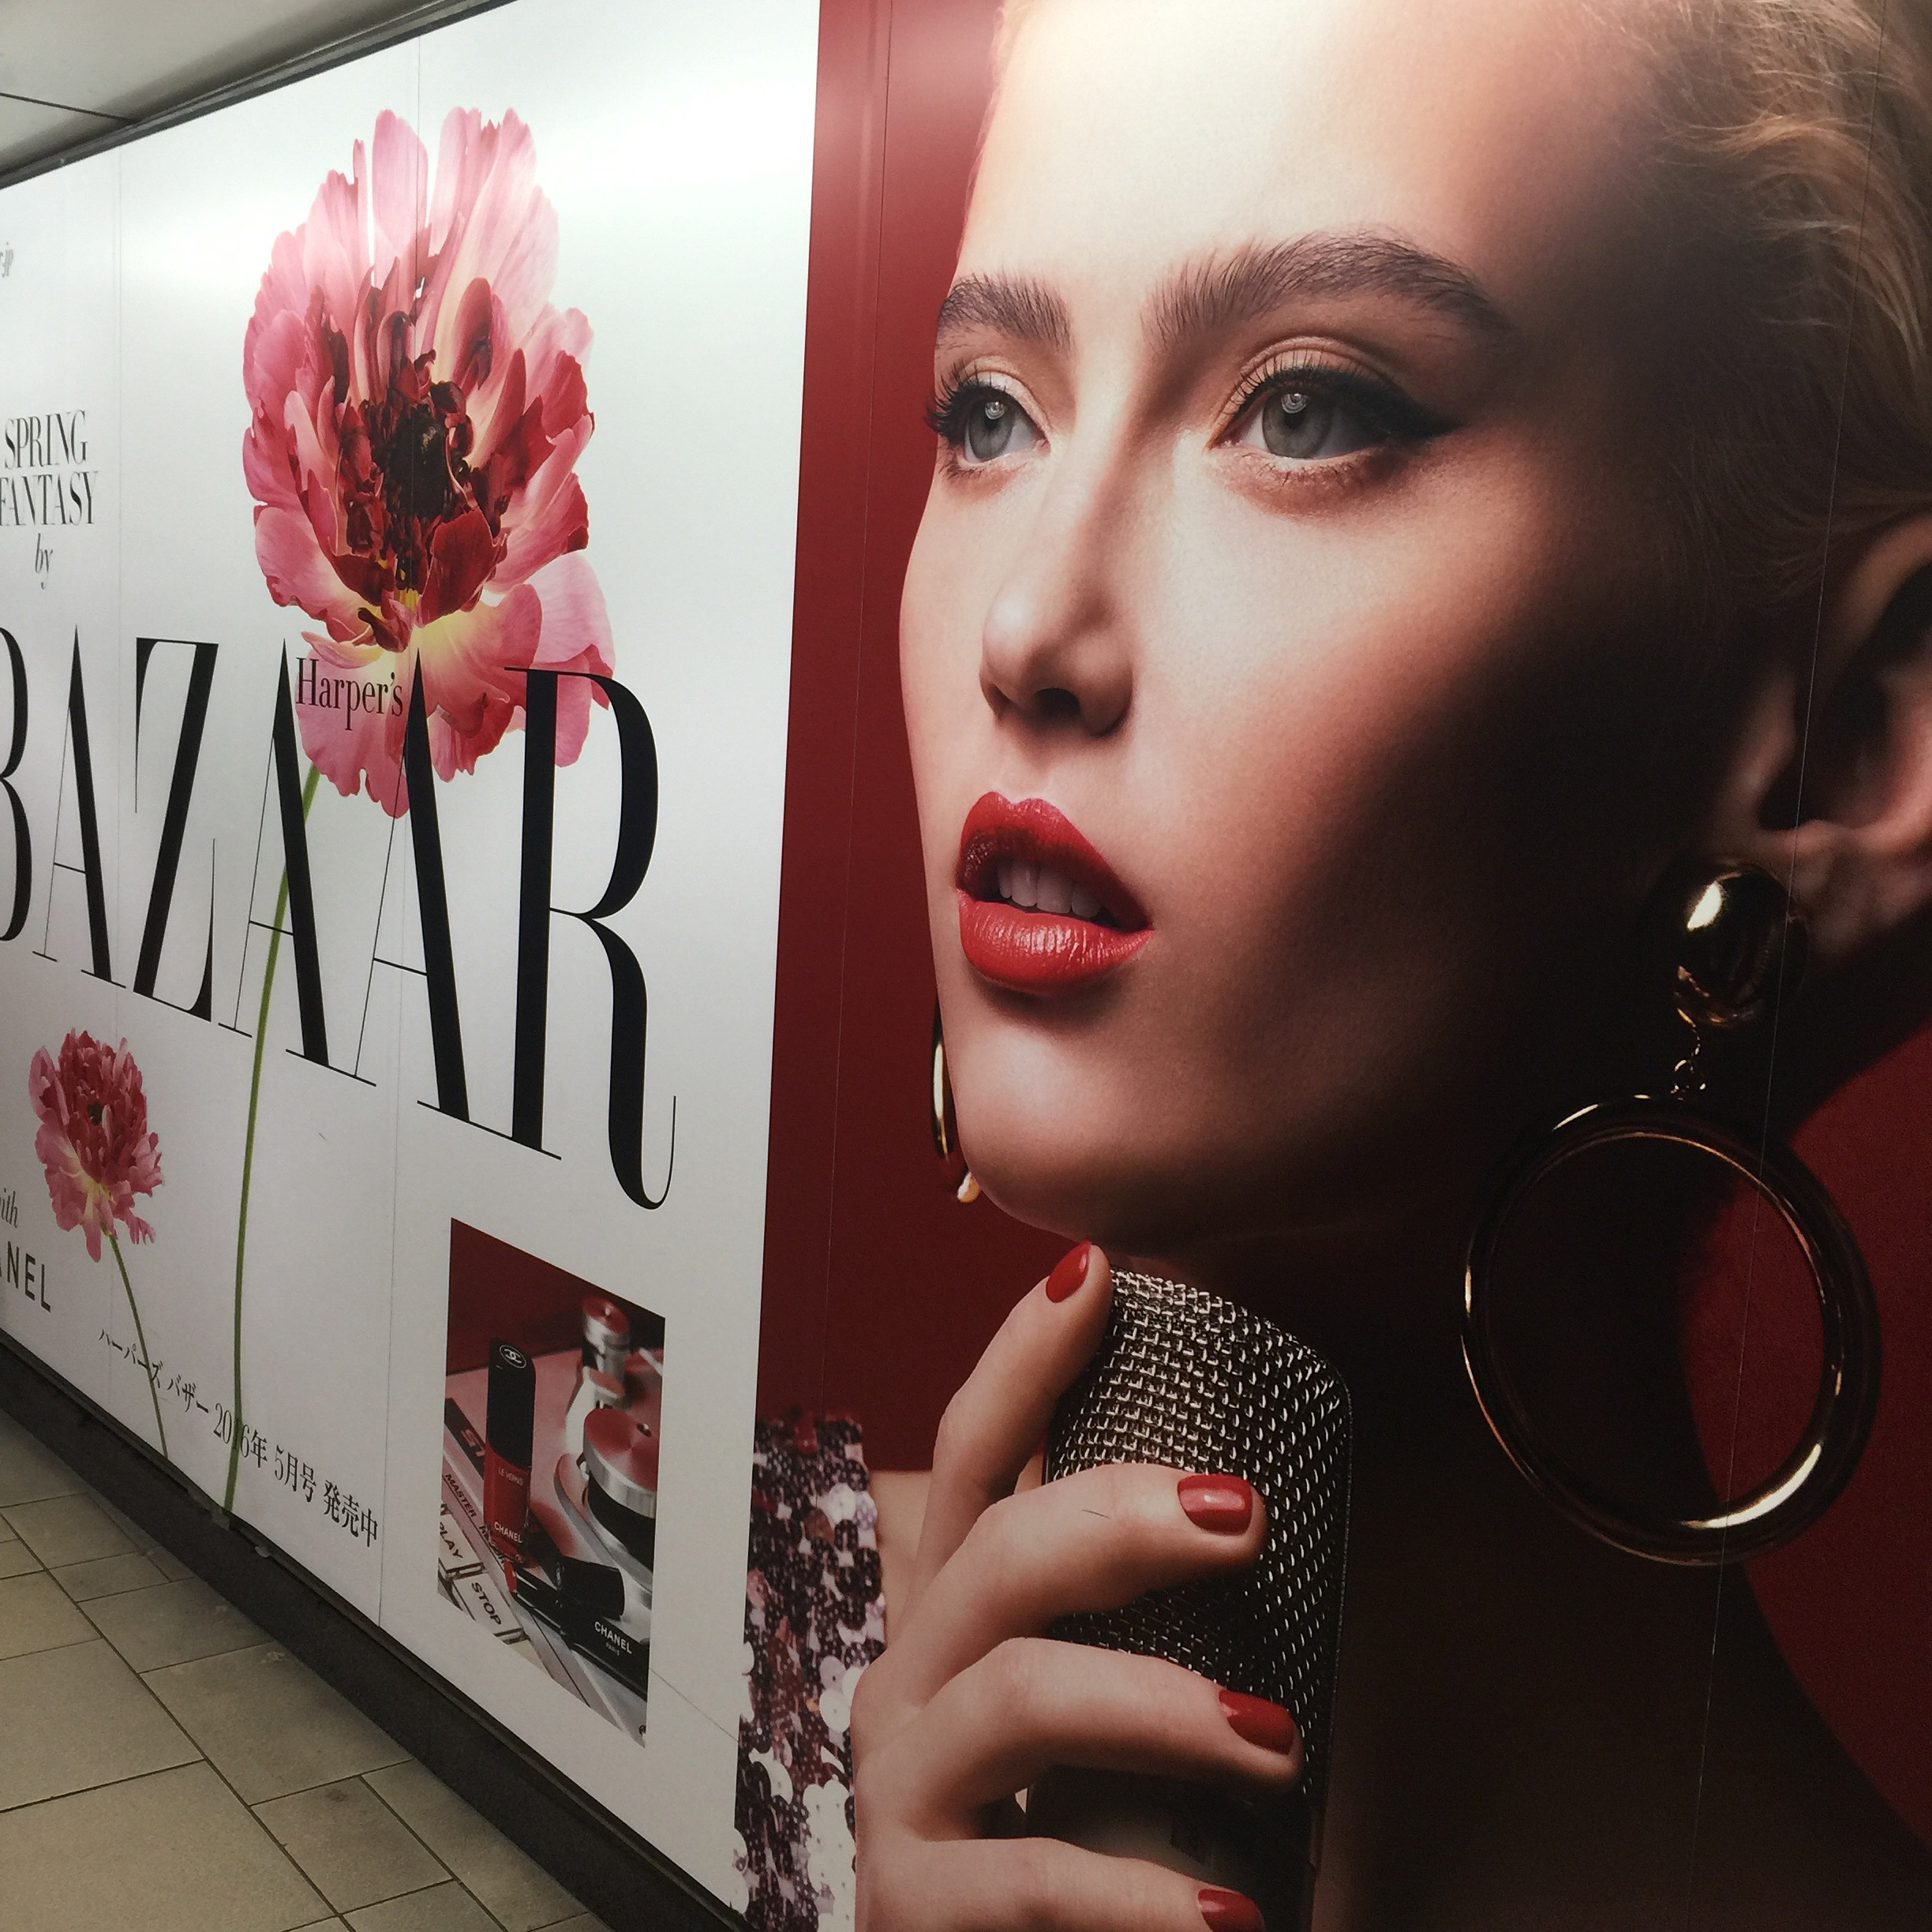 Omotesando station CHANEL and Harper's BAZAAR collabo ad